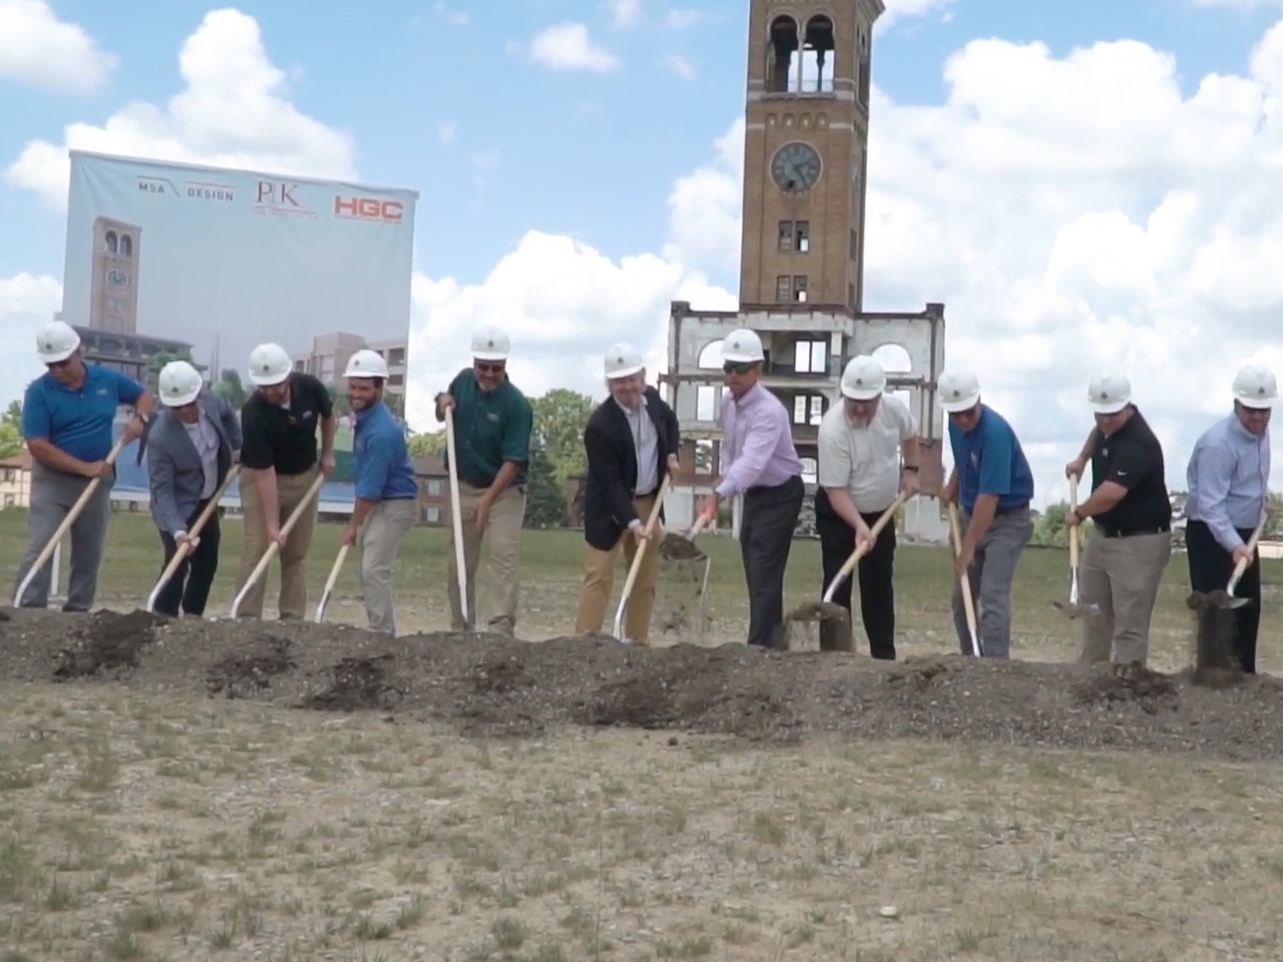 people breaking ground at a construction site with clock tower in background